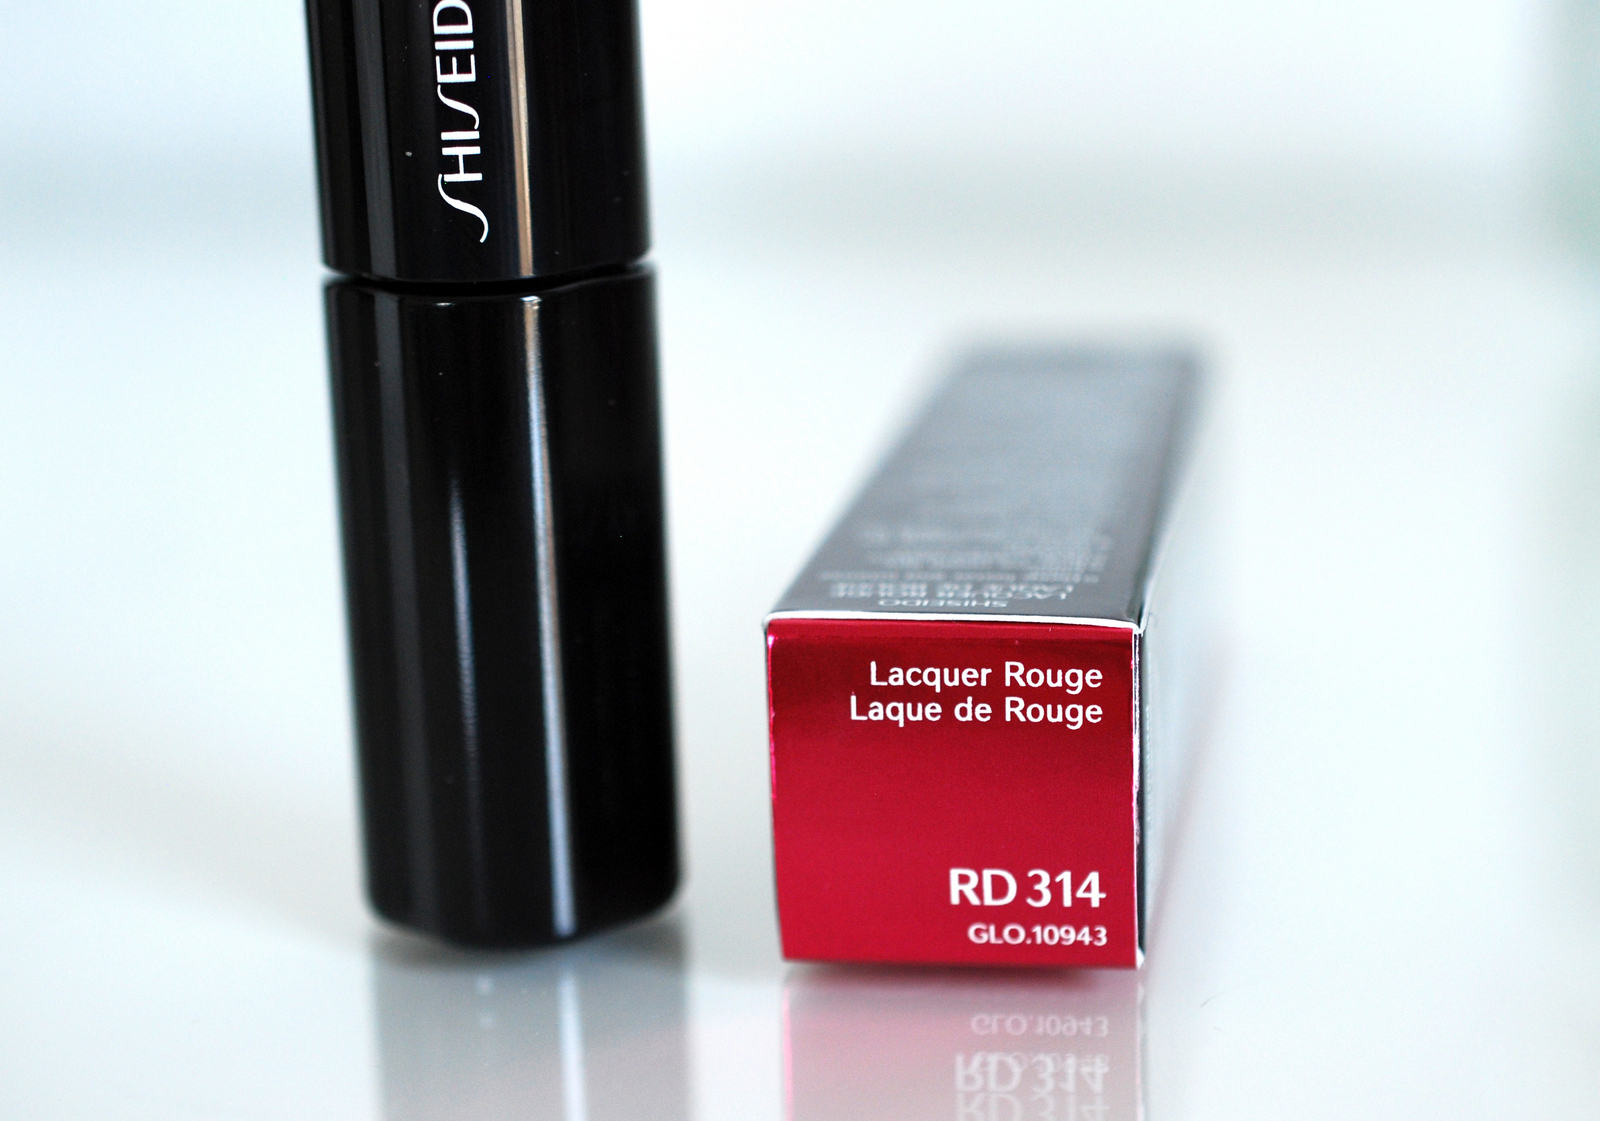 Testbericht zum Shiseido Lacquer Rouge RD314 Deep Coral